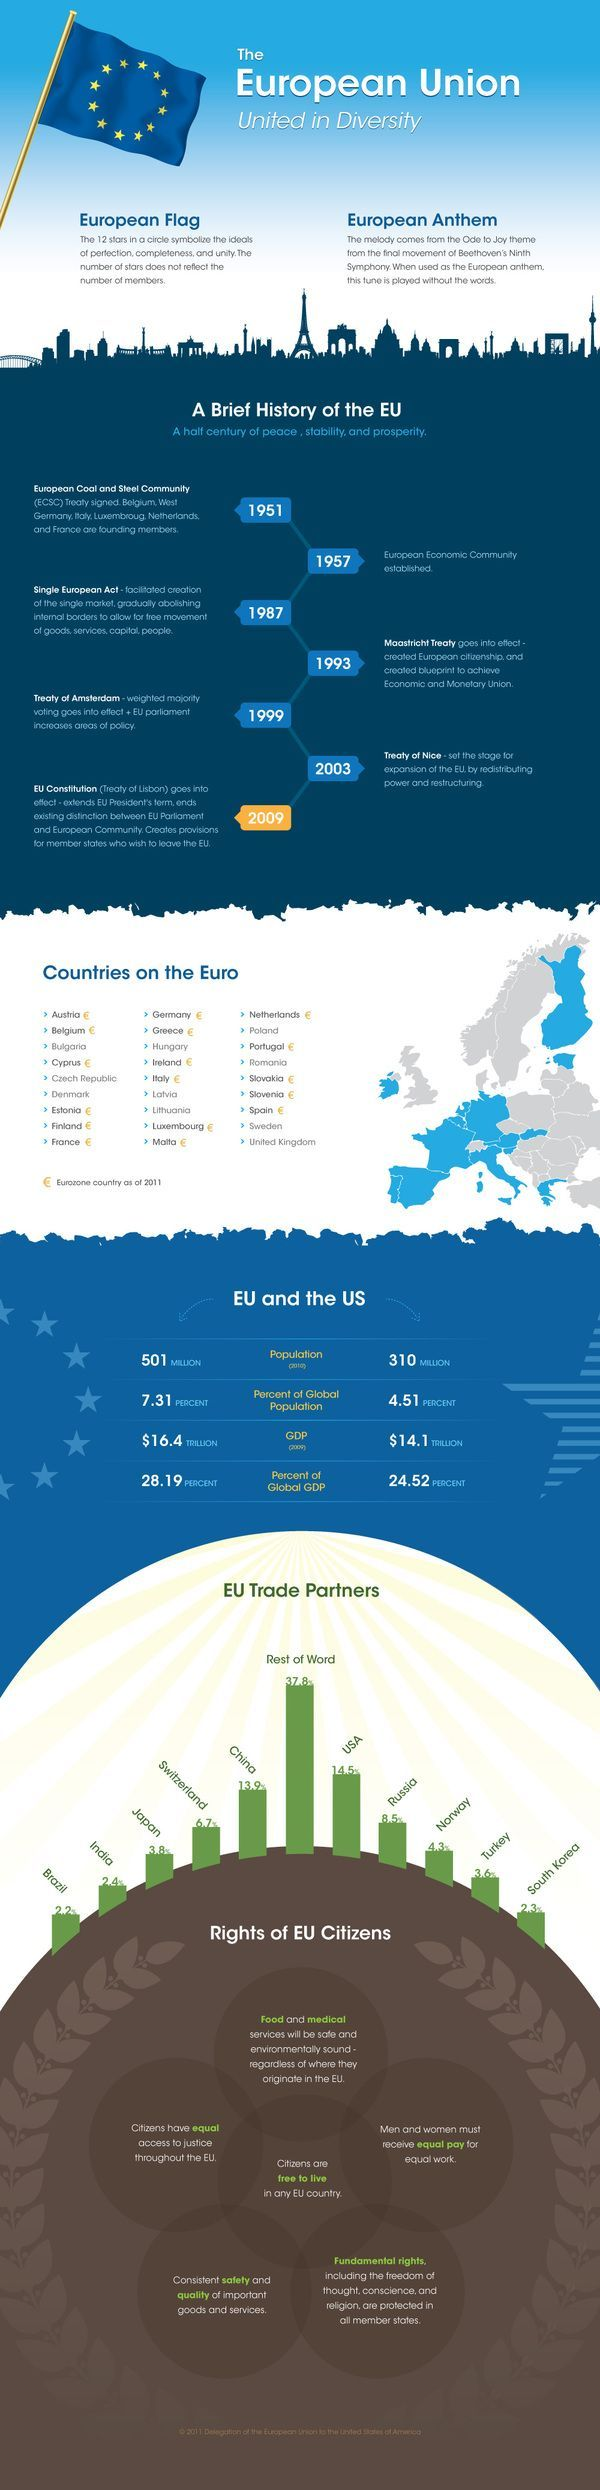 11th May. A brief history of the European Union. Studying for Strasbourg trip. (Croatia missing)